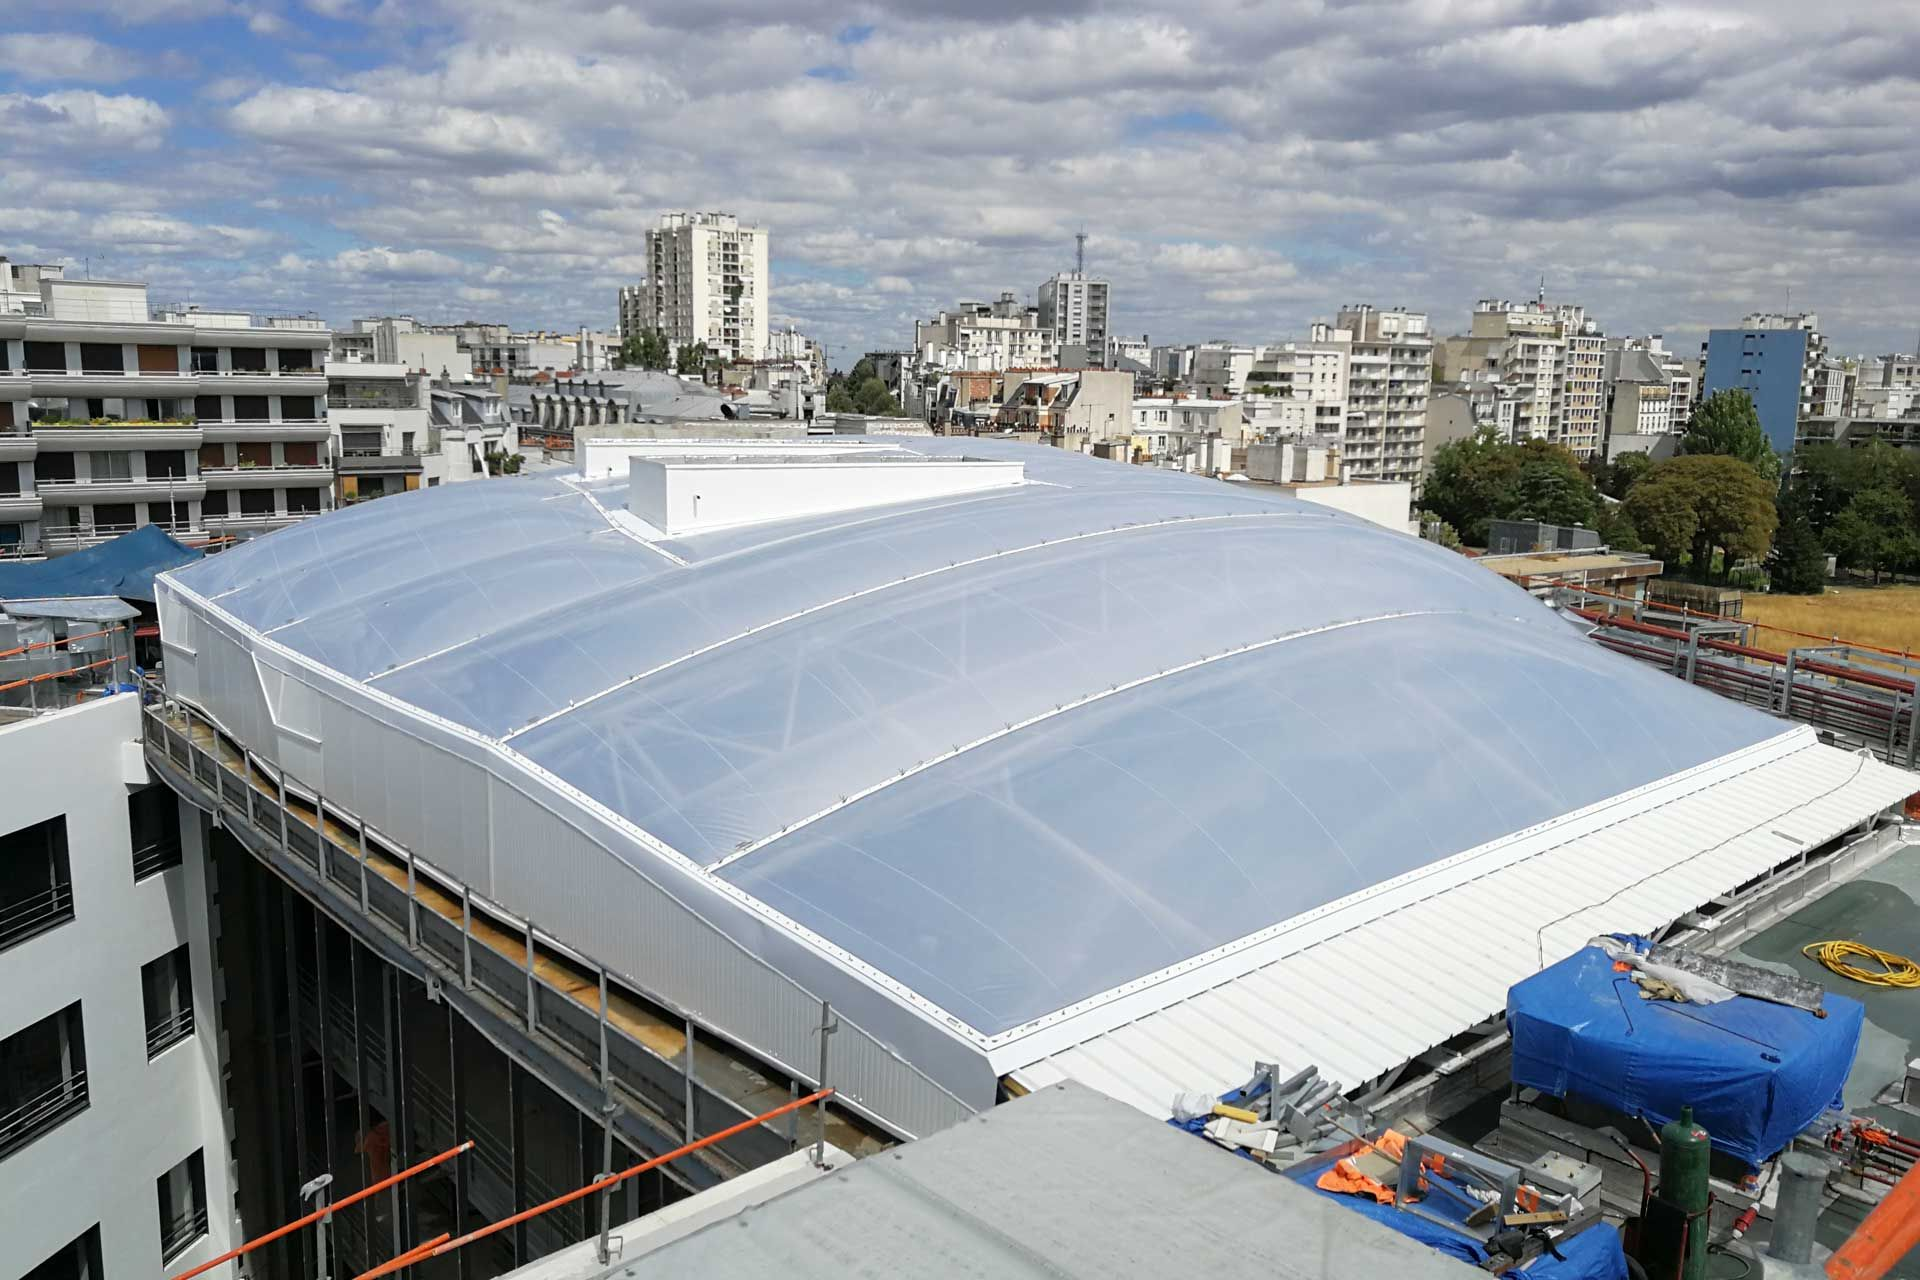 Roof of a building with ETFE